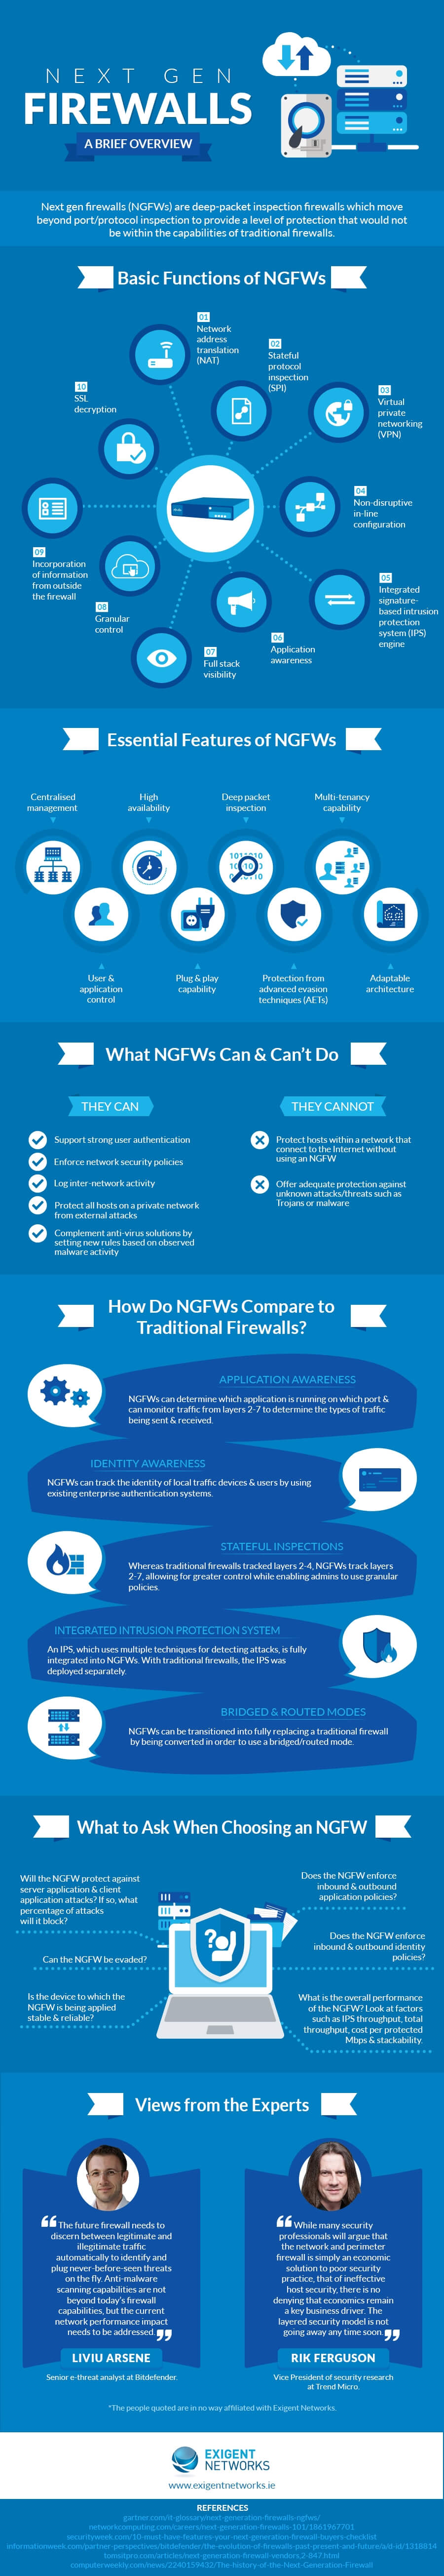 Next Gen Firewalls (NGFWs) - A Brief Overview Infographic - Basic Functions of Next Gen Firewalls (NGFWs) -  Essential Features of Next Gen Firewalls (NGFWs) - What Next Gen Firewalls (NGFWs) Can Do - How Do Next Gen Firewalls (NGFWs) Compare to Traditional Firewalls? - What to Ask When Choosing an NGFW